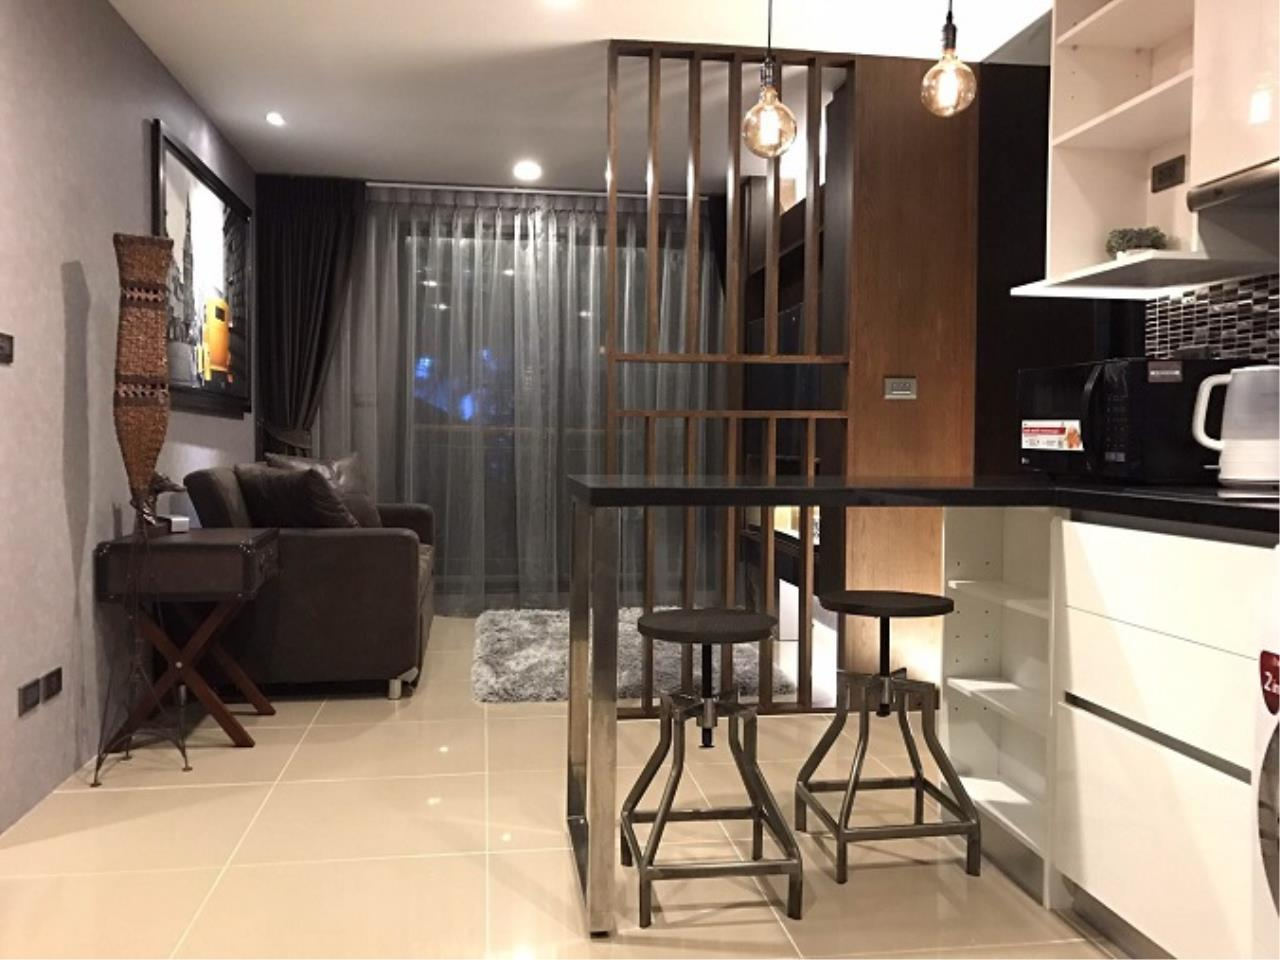 RE/MAX All Star Realty Agency's Mirage Sukhumvit one bed condo for sale/rent (BTS Asoke / MRT Sukhumvit) 5